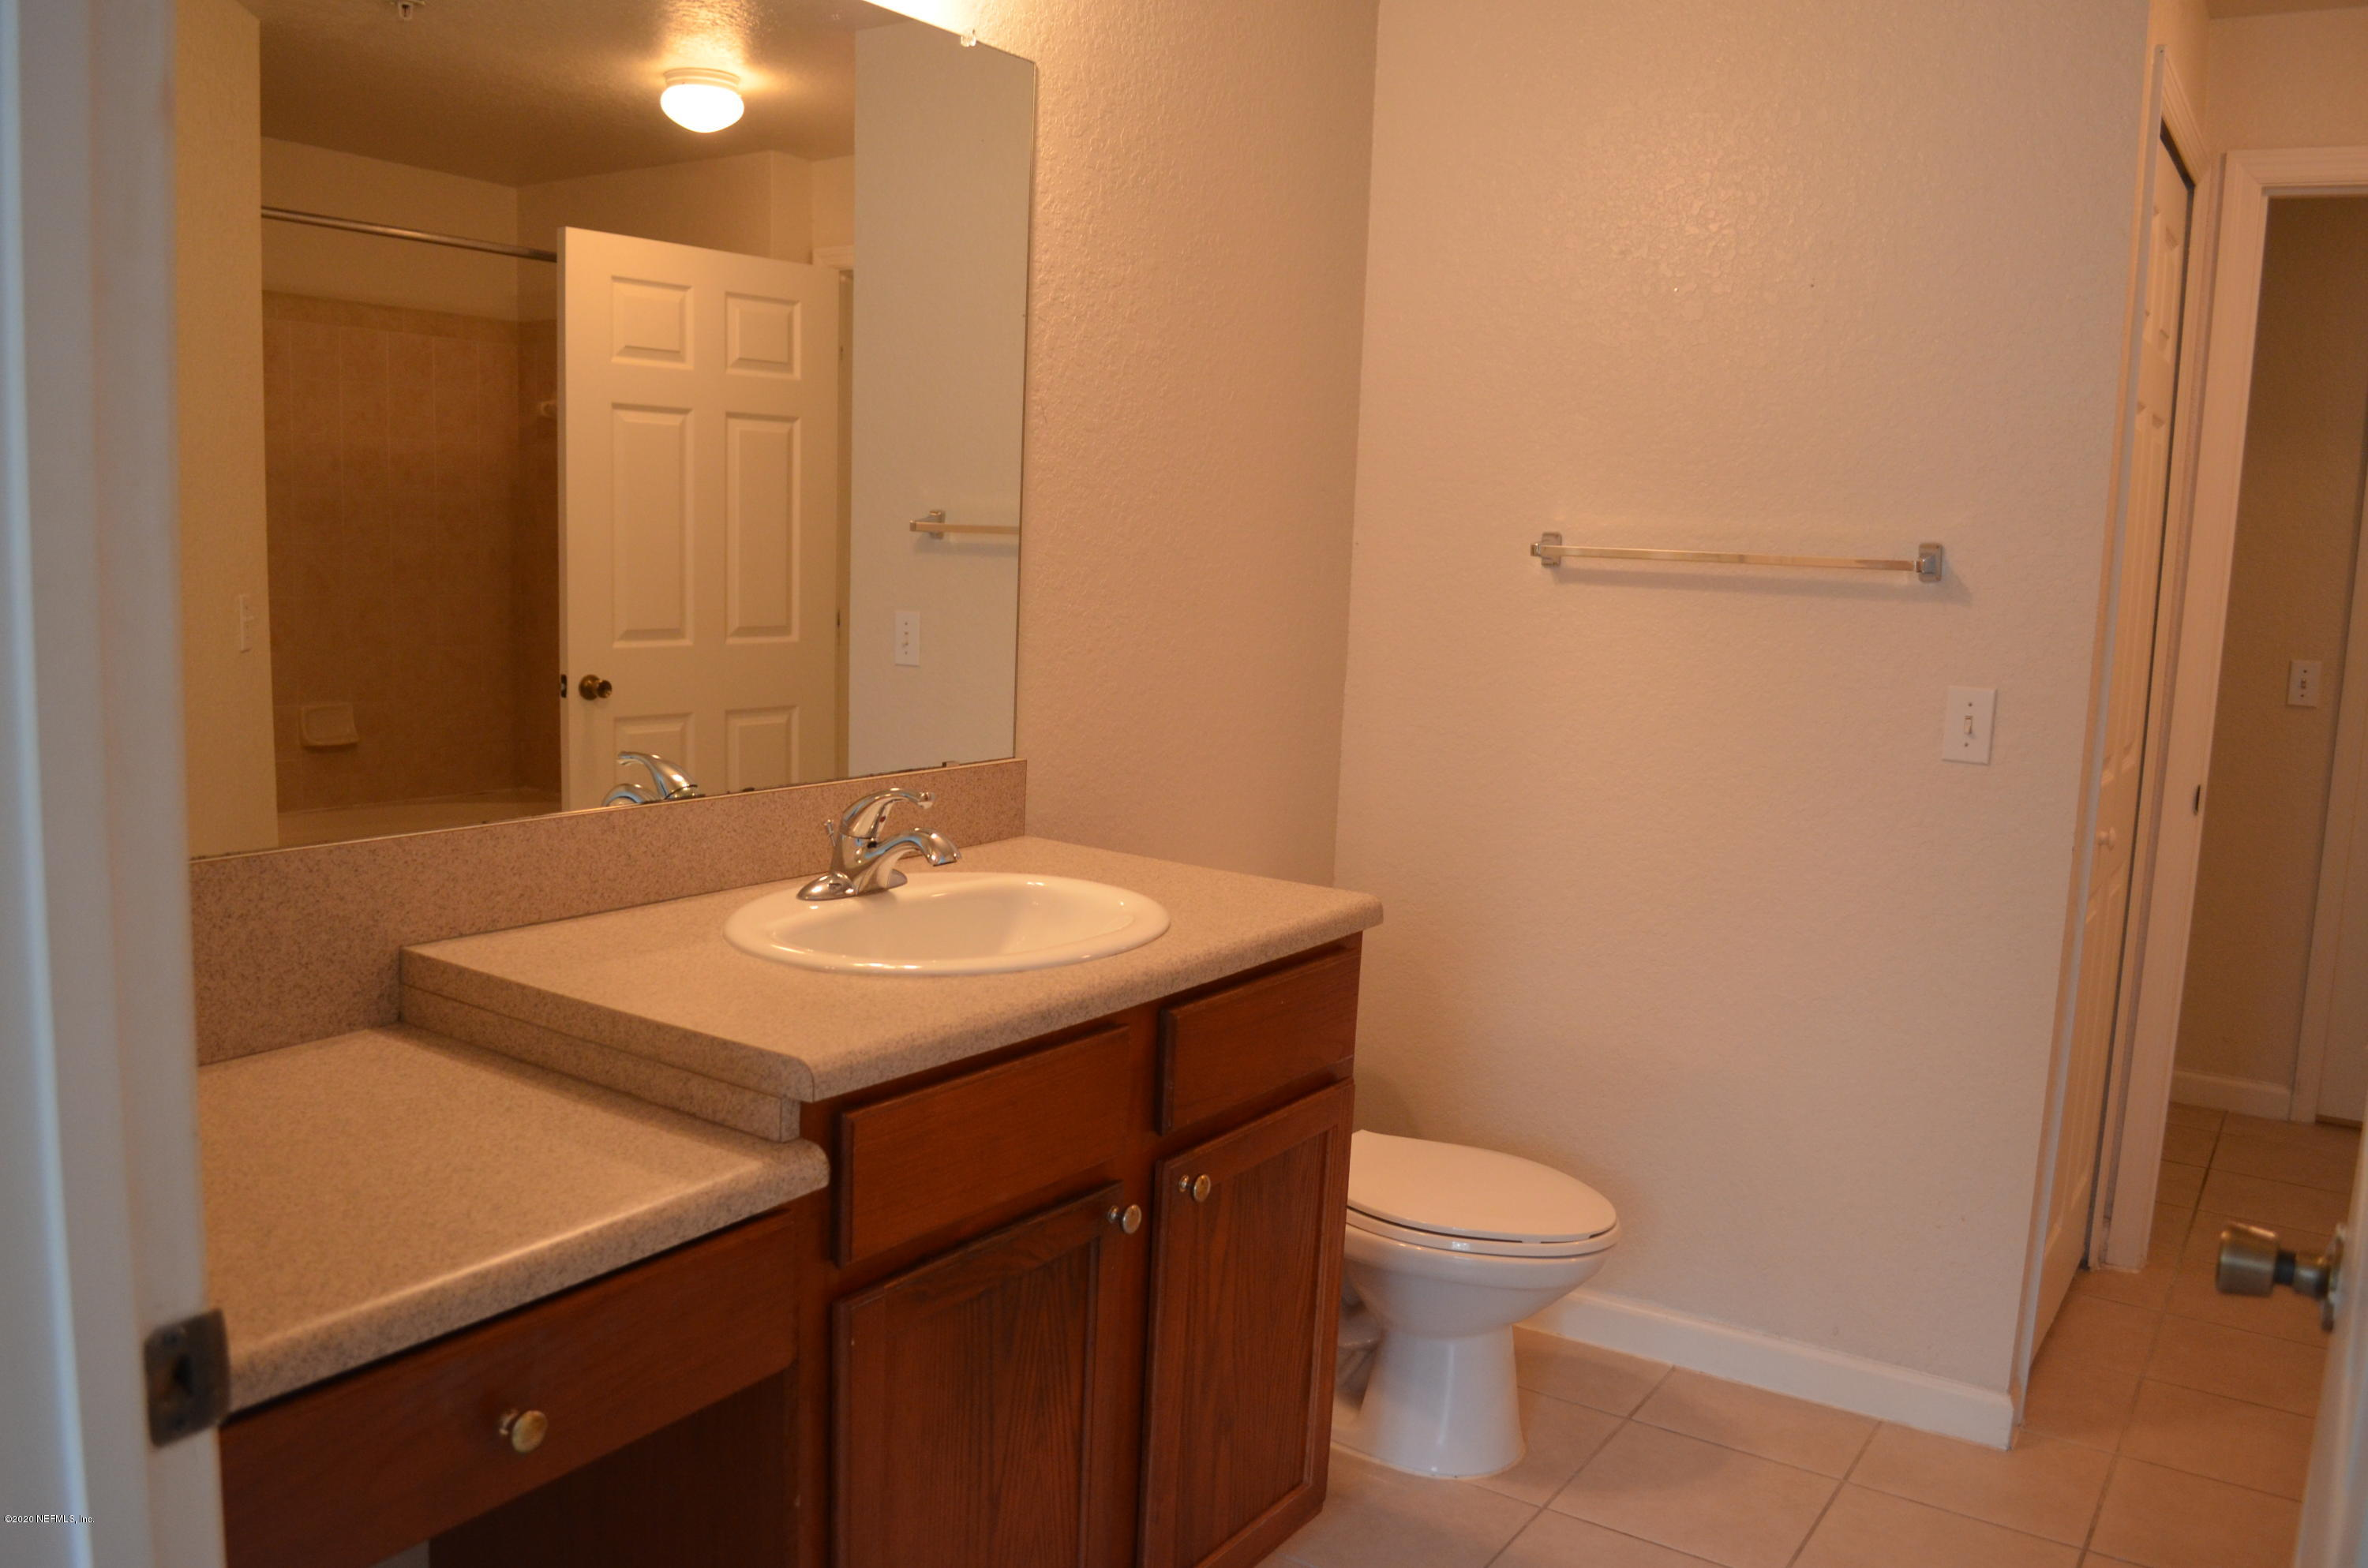 8550 TOUCHTON, JACKSONVILLE, FLORIDA 32216, 1 Bedroom Bedrooms, ,1 BathroomBathrooms,Rental,For Rent,TOUCHTON,1082727